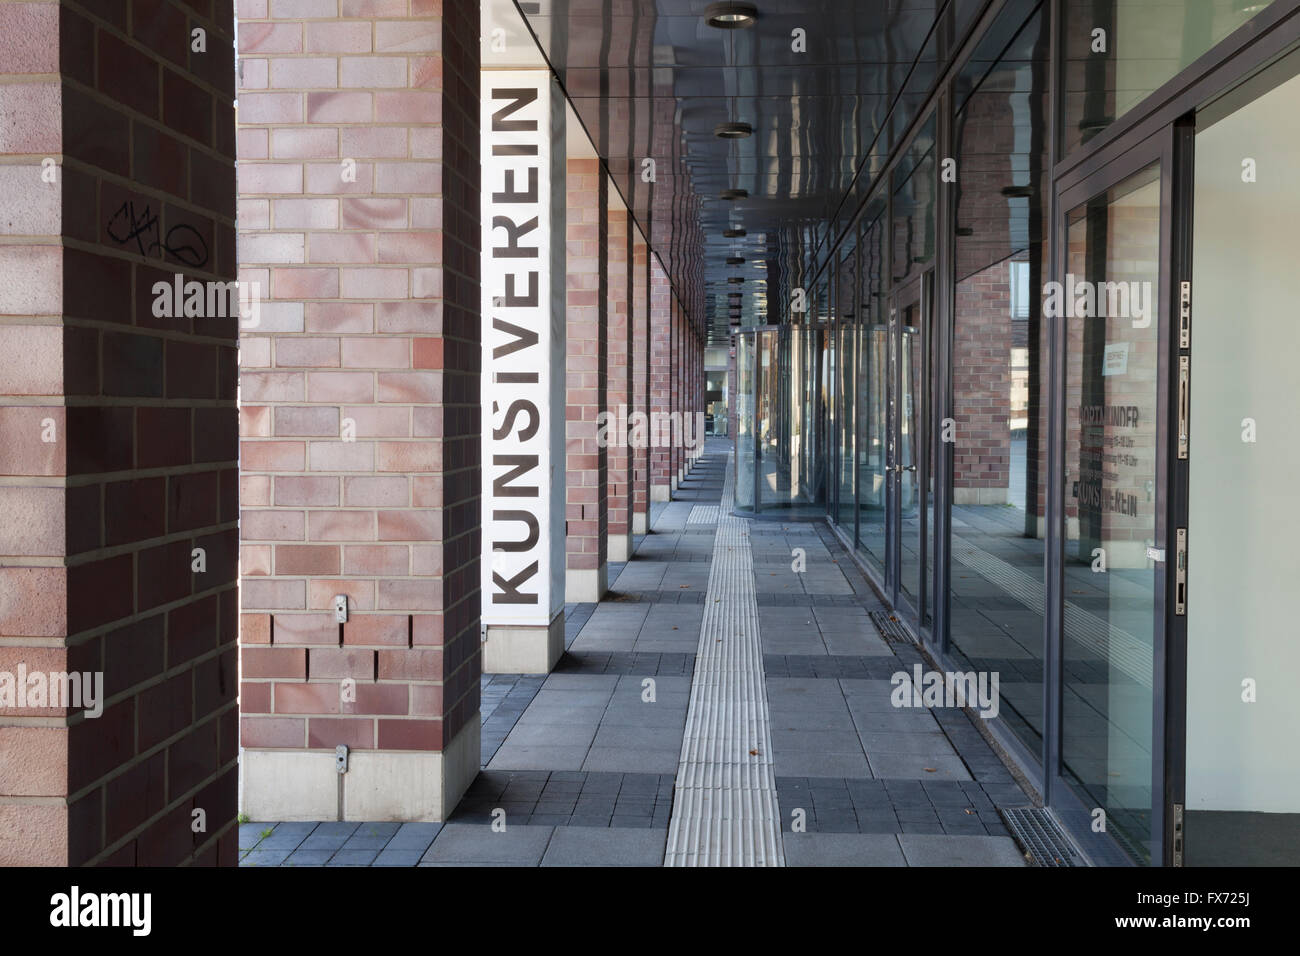 Colonnade, art society, Center for Art and Creativity, Dortmunder U, Dortmund, Ruhr district, North Rhine-Westphalia, - Stock Image